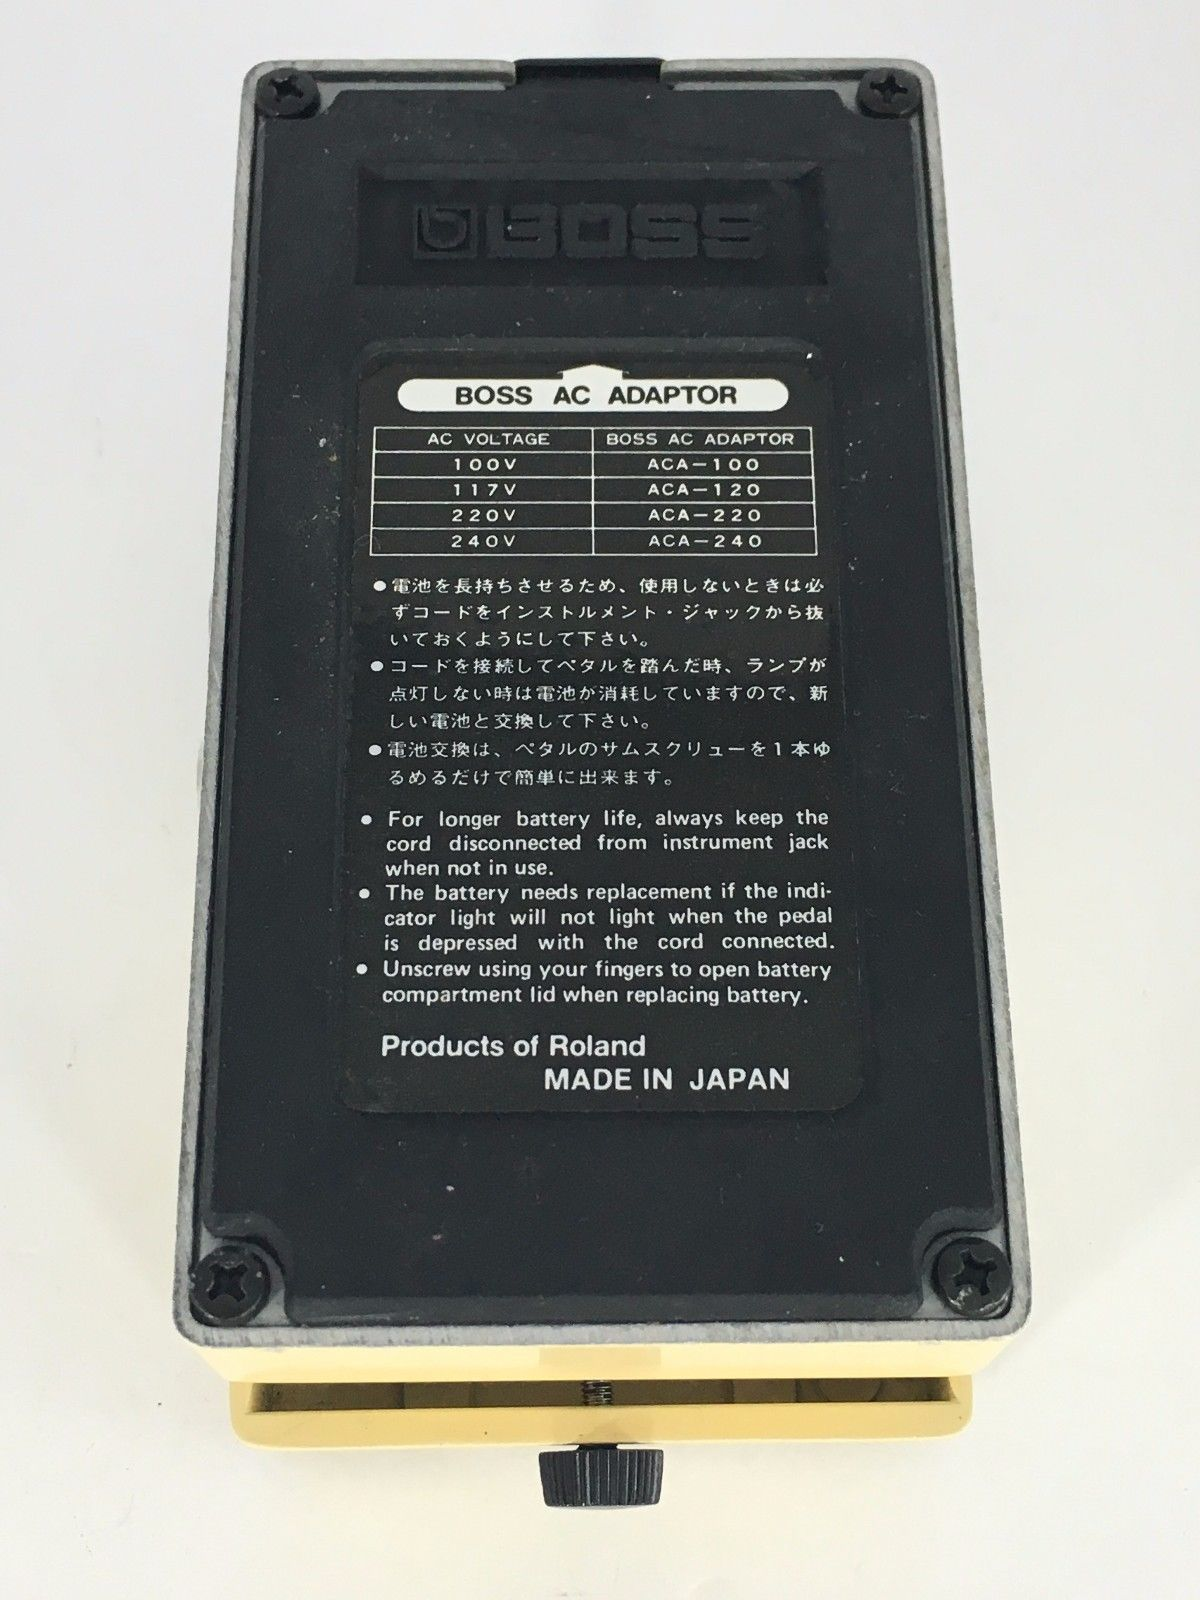 boss ft 2 dynamic filter guitar effects pedal made in japan 1986 vintage rare guitar of china. Black Bedroom Furniture Sets. Home Design Ideas